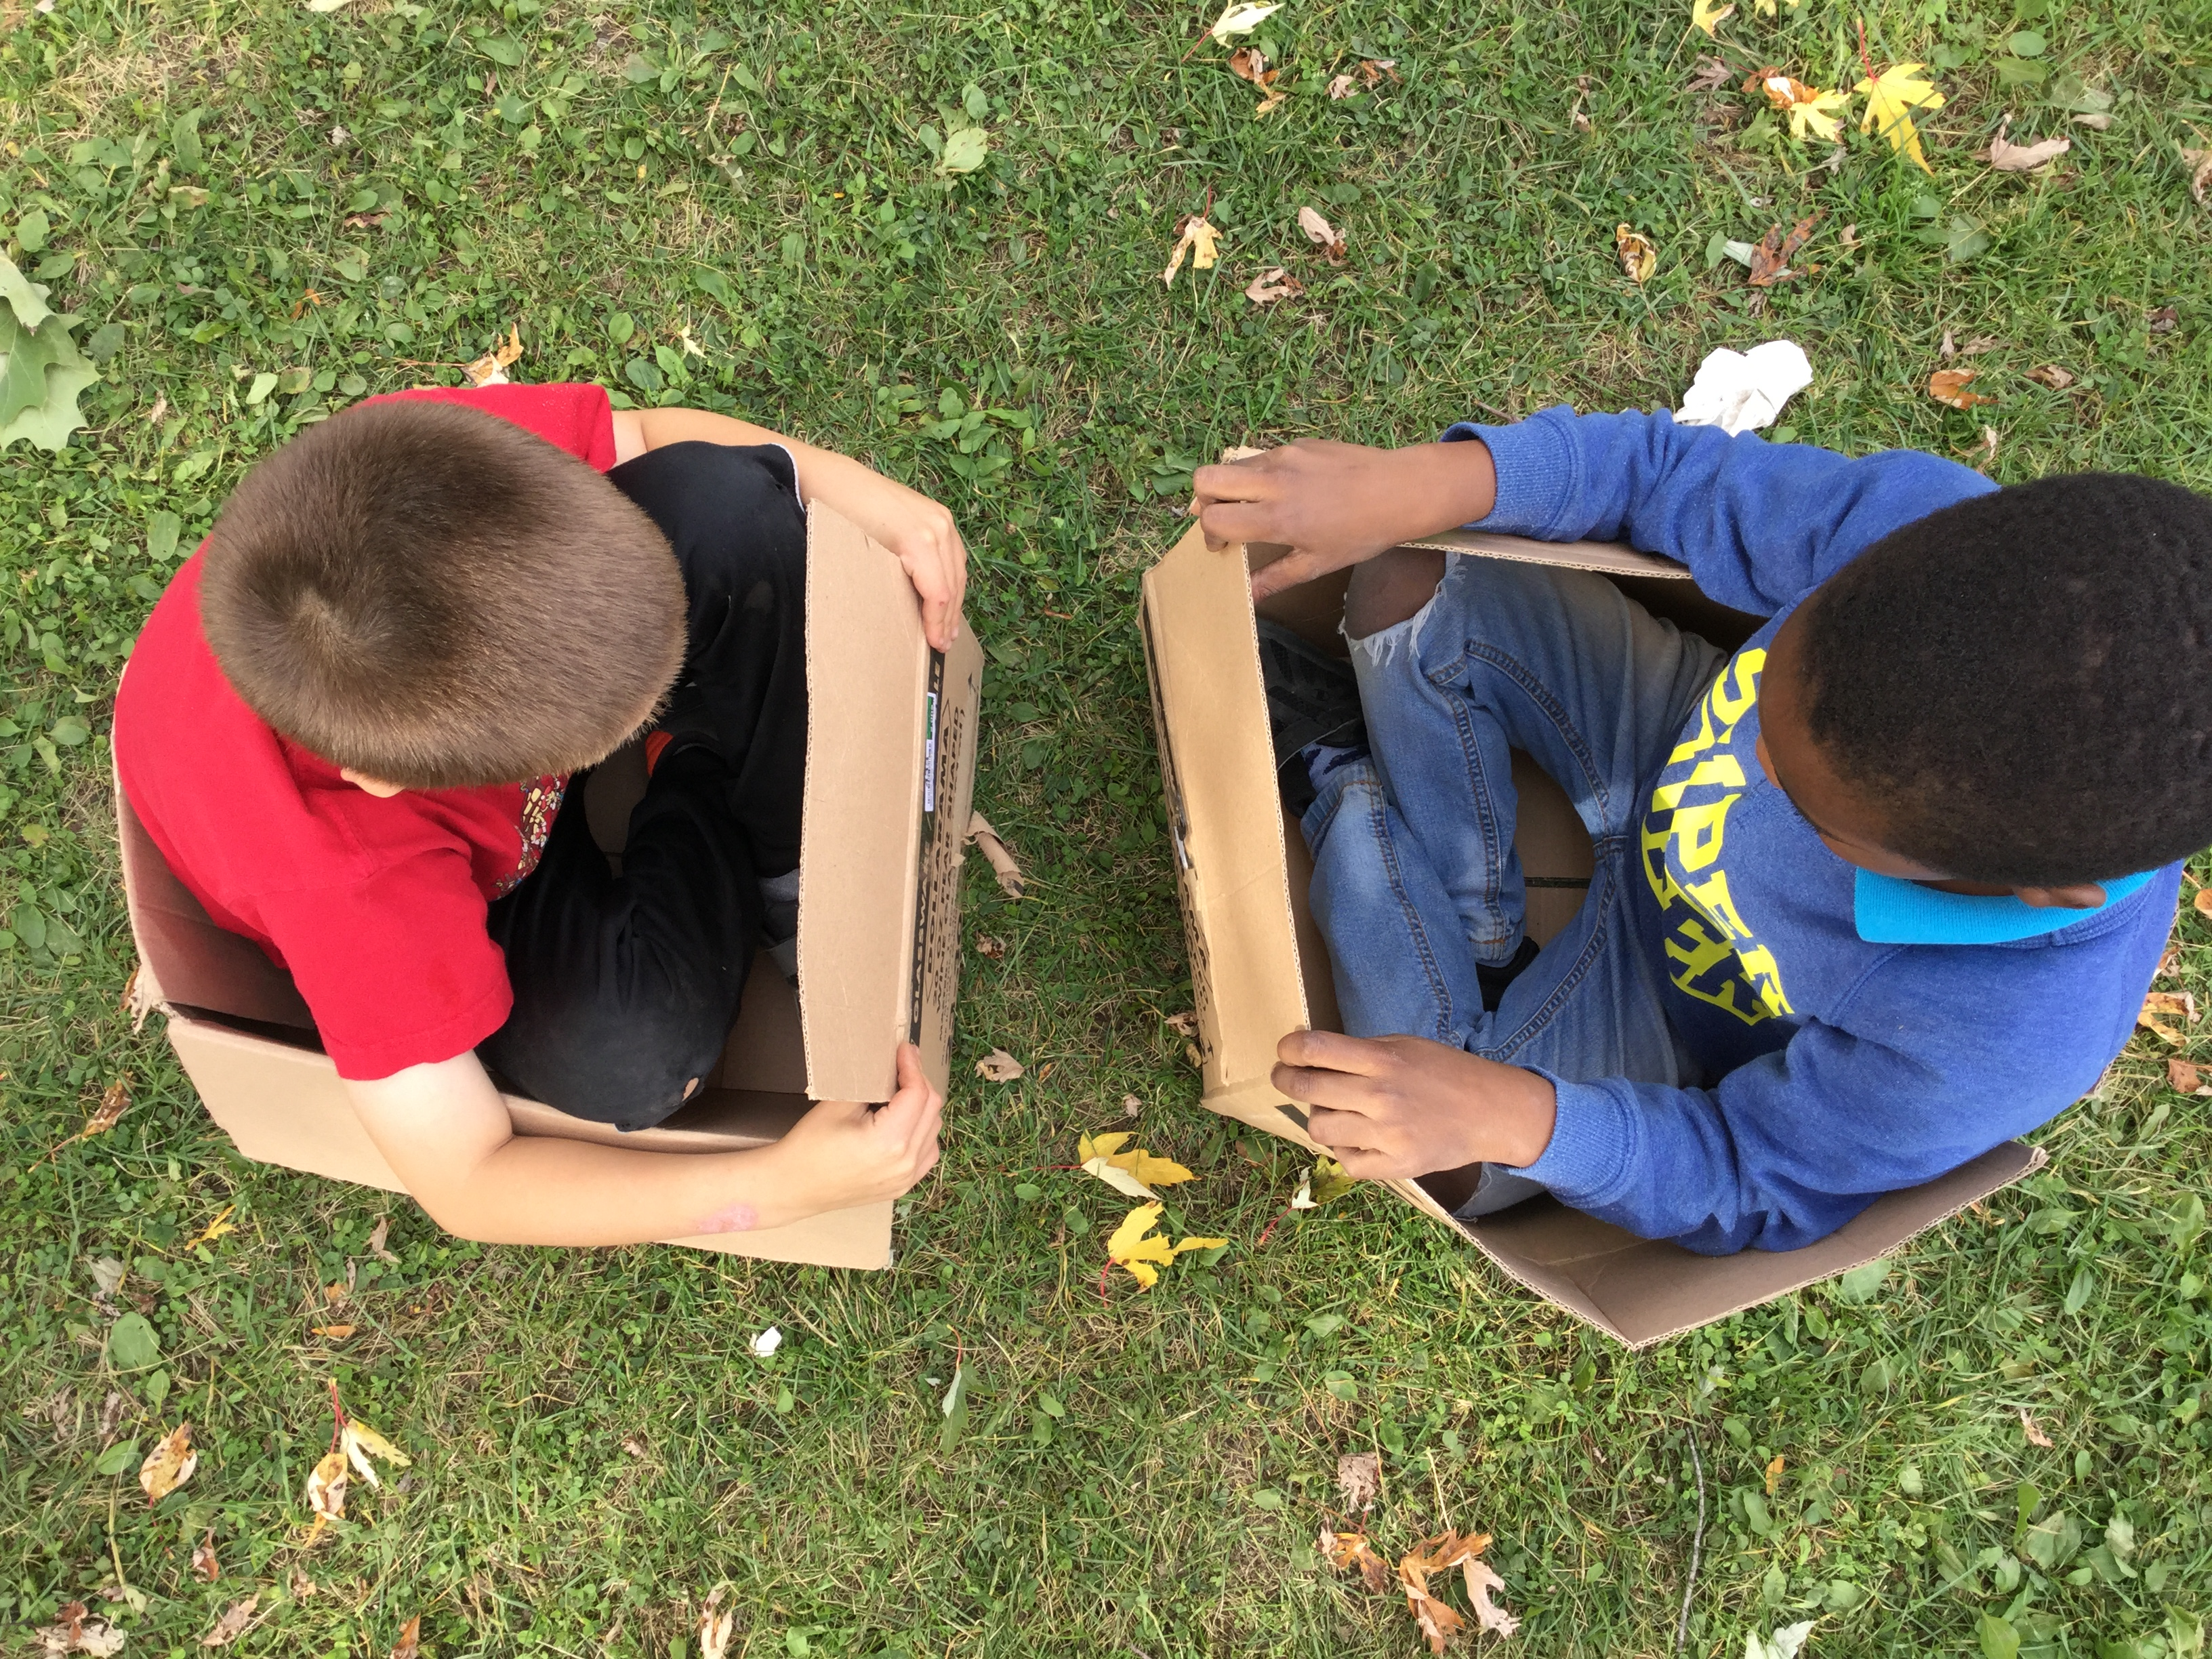 Two boys play outside sitting in cardboard boxes. Image: Joanne Burbidge